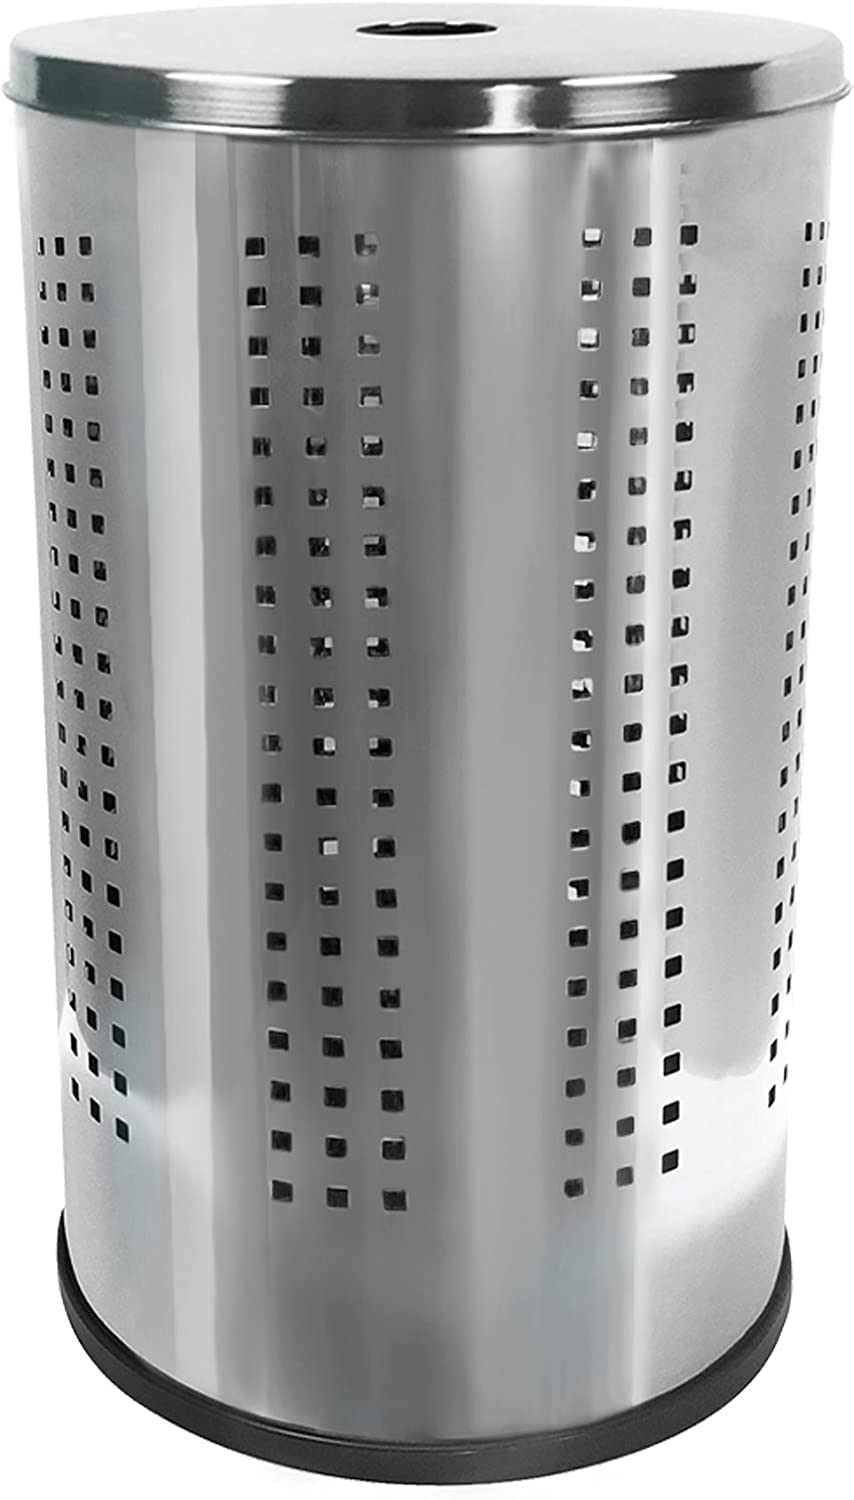 Krugg Stainless Steel Laundry Bin & Hamper | 46L Ventilated Stainless Steel Clothes Basket with Polished Lid Life Time Warranty| (Polished Stainless Steel)